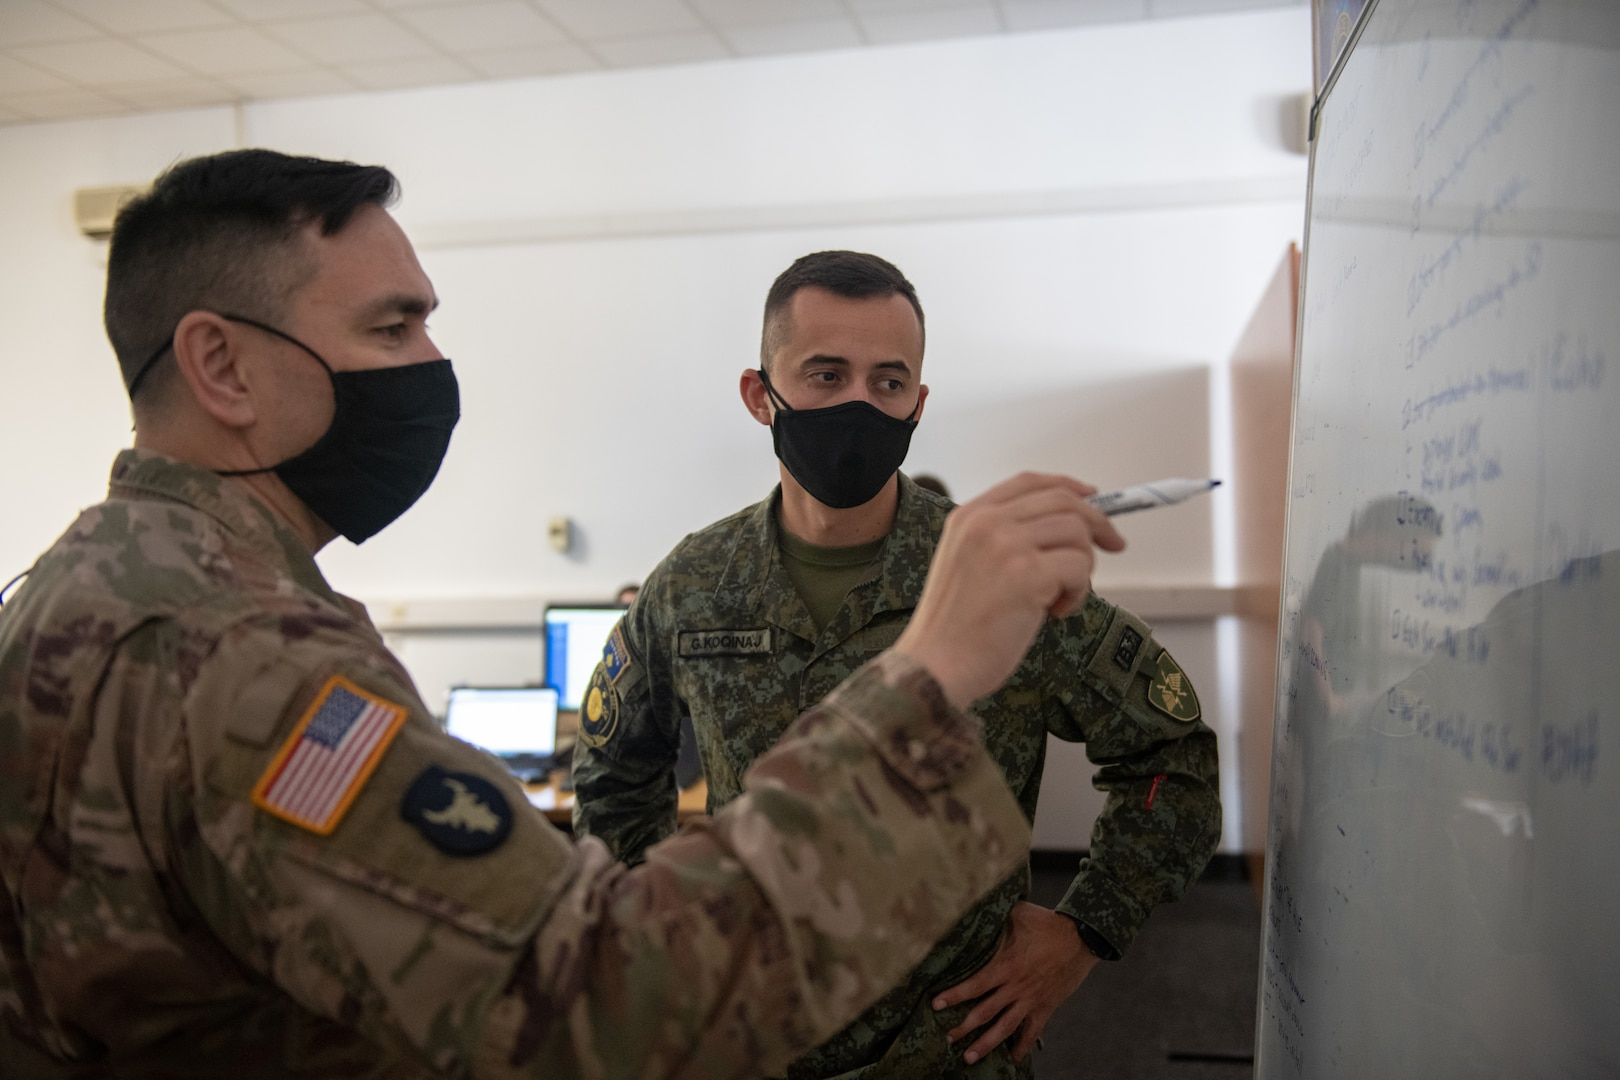 U.S. Army Lt. Col. Gene Harrigan, the defensive cyber operations team chief of the information with Minnesota National Guard Joint Force Headquarters Defensive Cyber Operations Element, explains information to Capt. Genti Koqinaj of the Kosovo Security Forces during a joint cyber training exercise, Midwest Croatia Kosovo Exercise Adriatic Thunder at Dr. Franjo Tudman Croatian Military Academy, Zagreb, Croatia, on June 15, 2021.